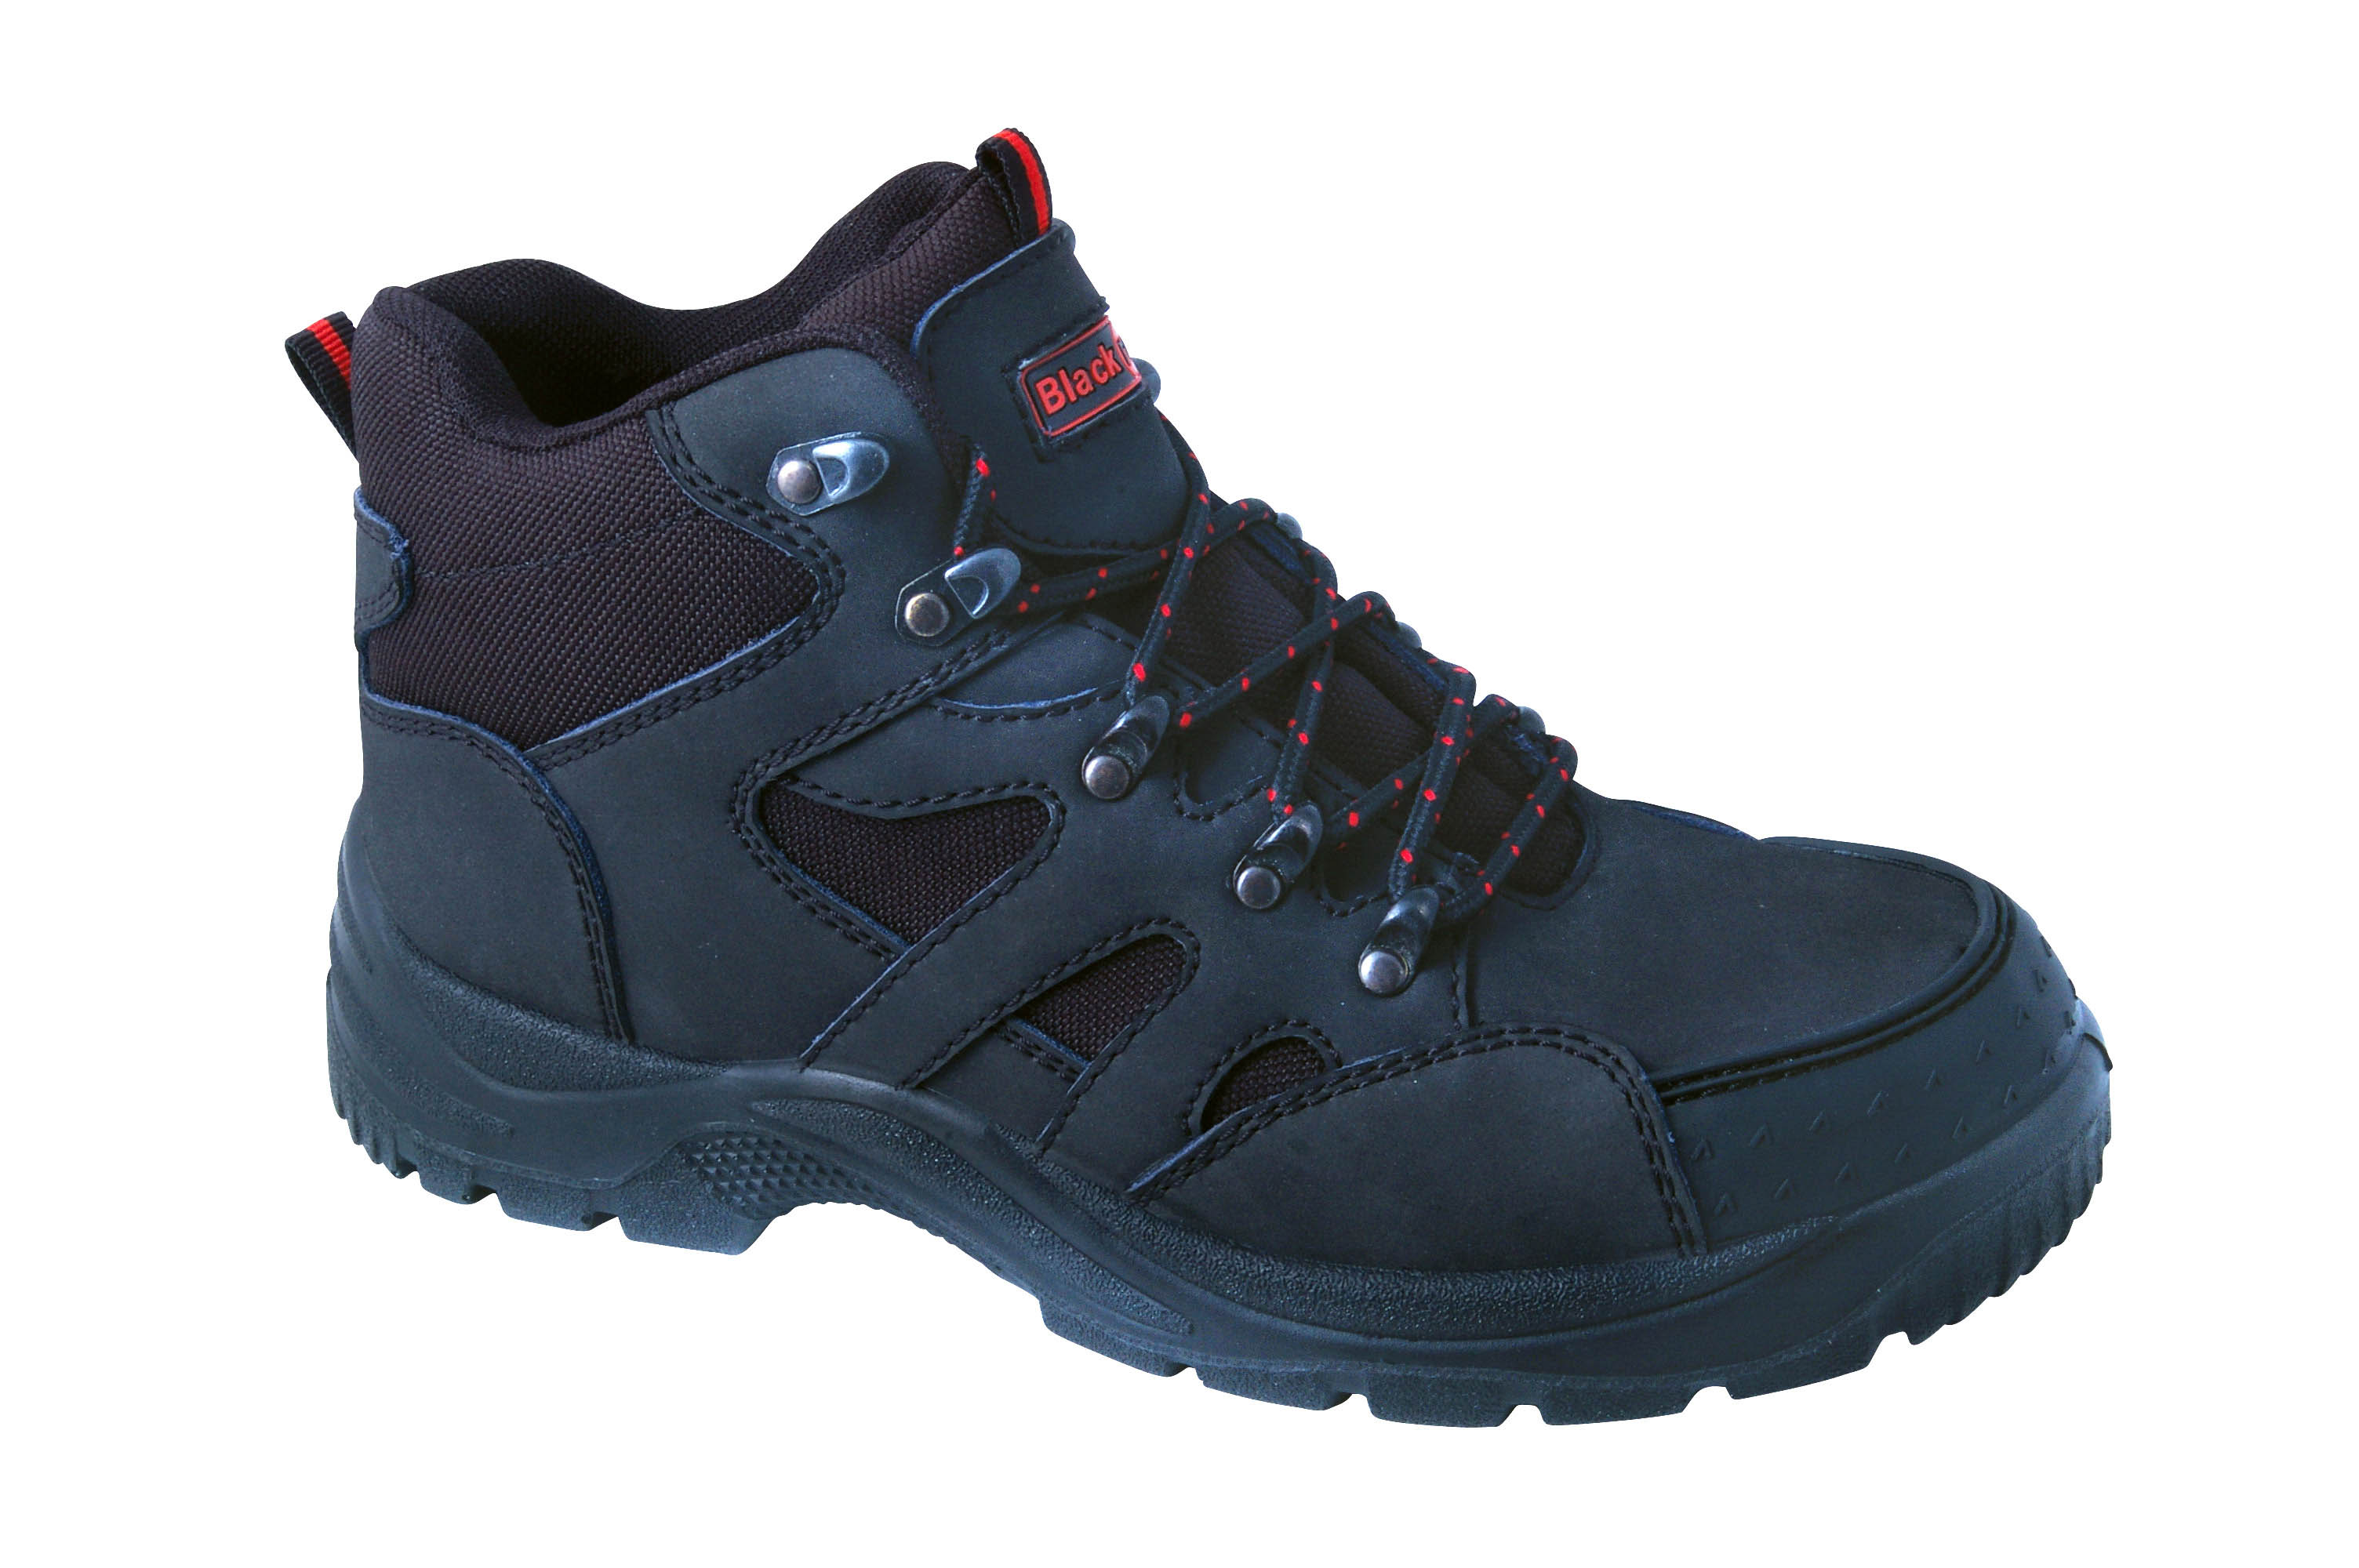 Blackrock Black Saftey Shoes